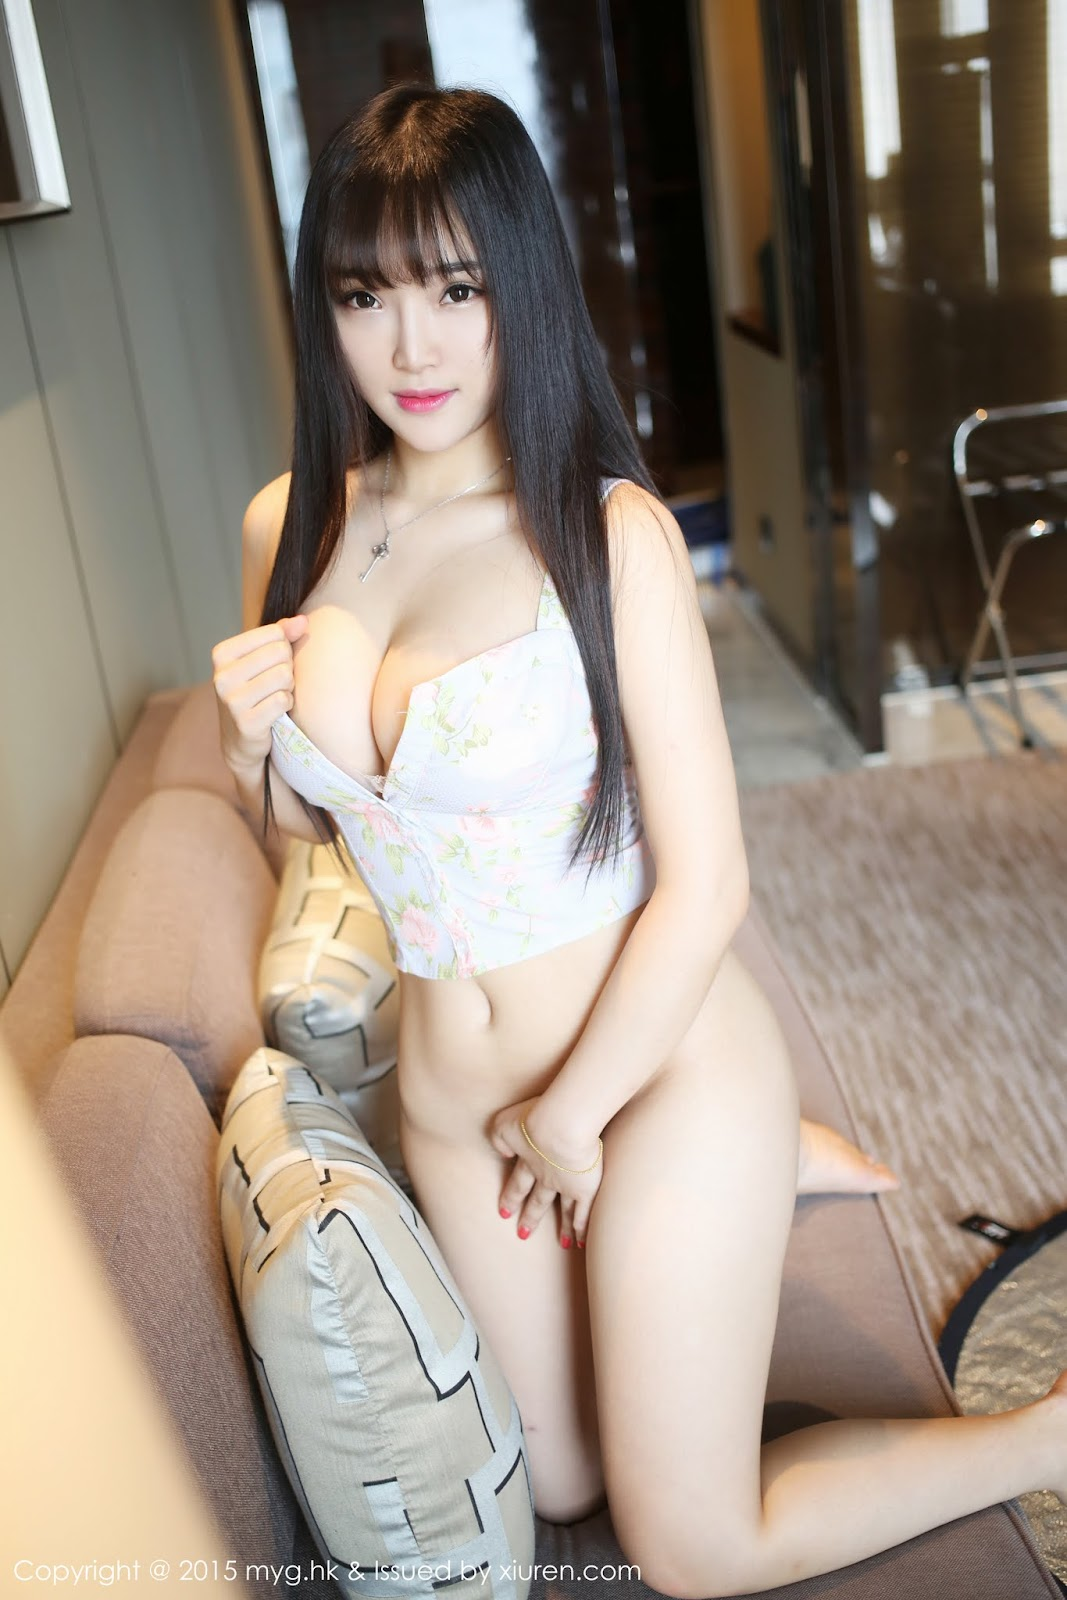 0001 - Sexy Girl Model MYGIRL VOL.118